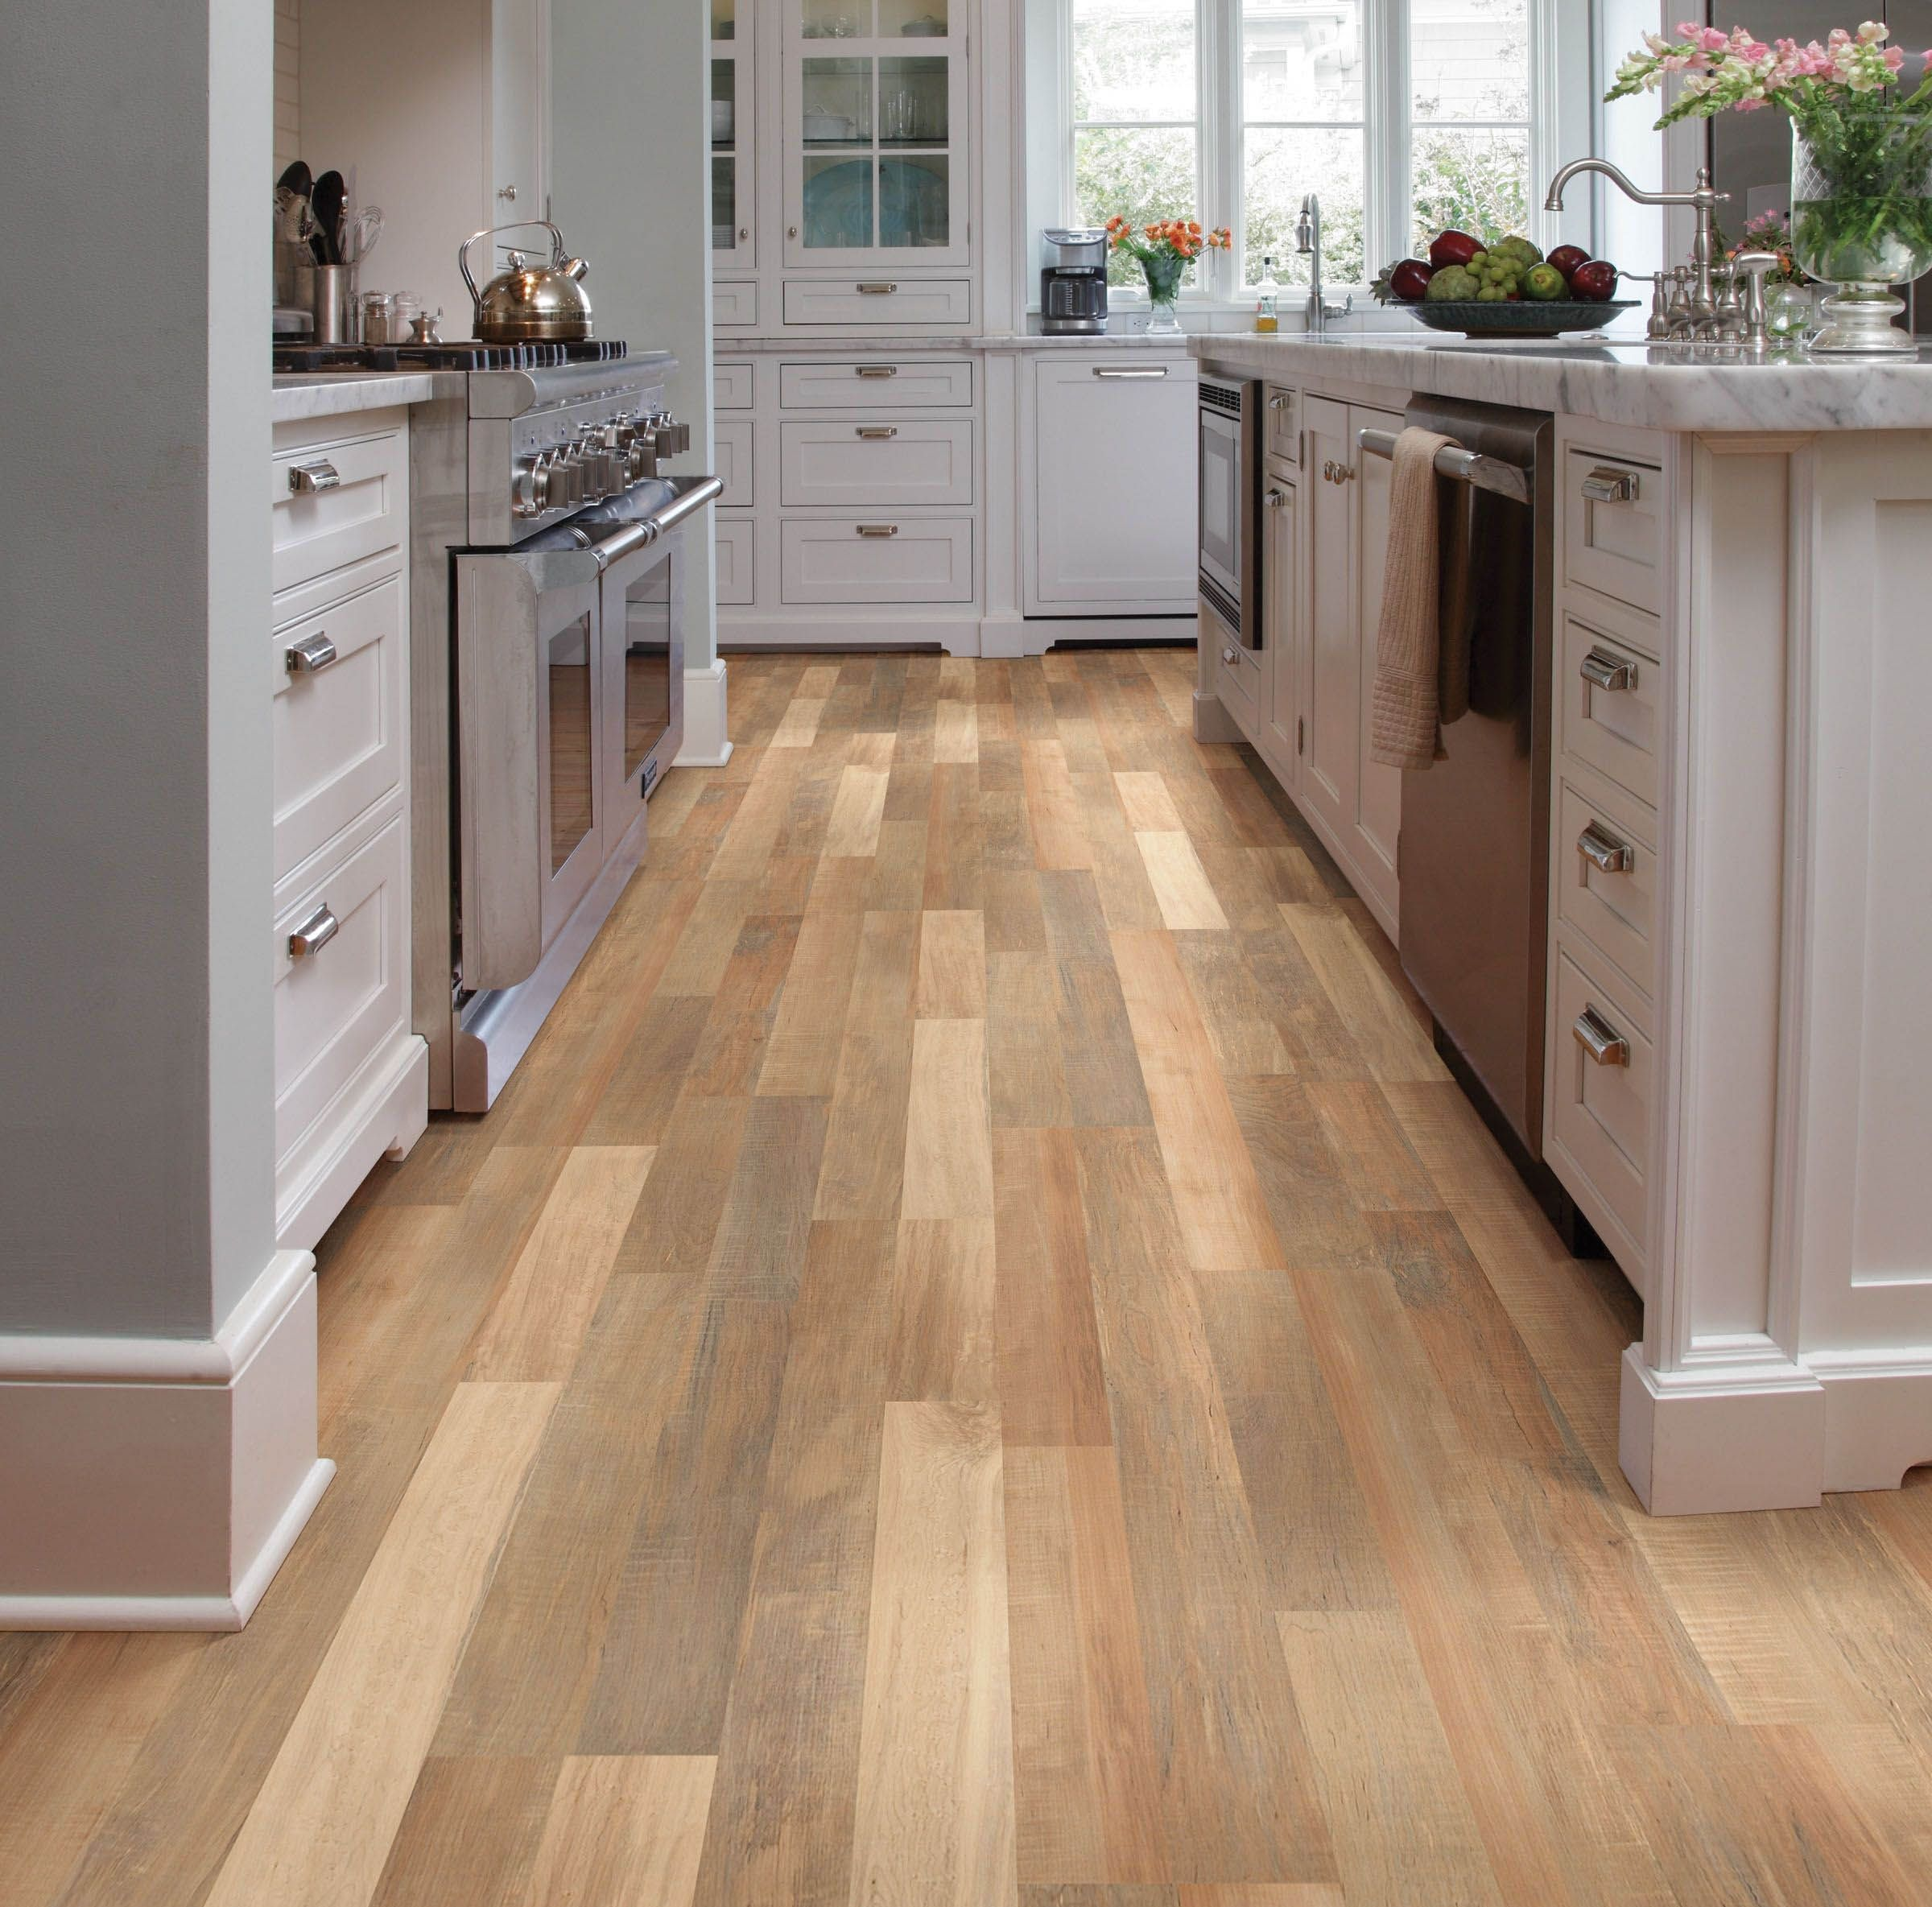 Laminate flooring is there a waterproof option